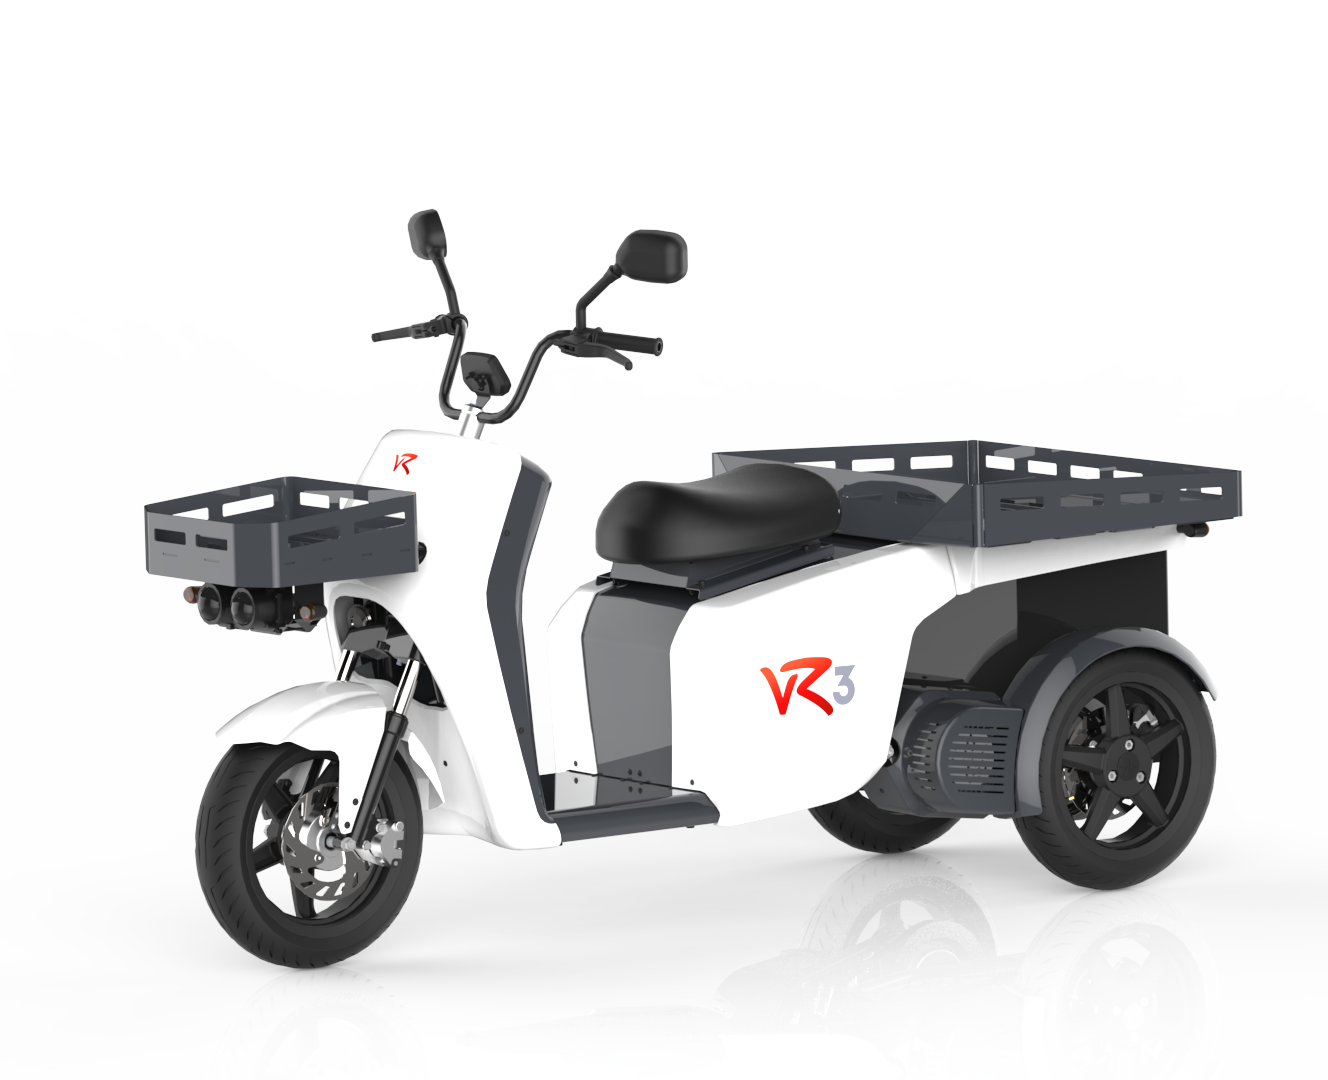 vR3 electric tricycle, the modular electric vehicle